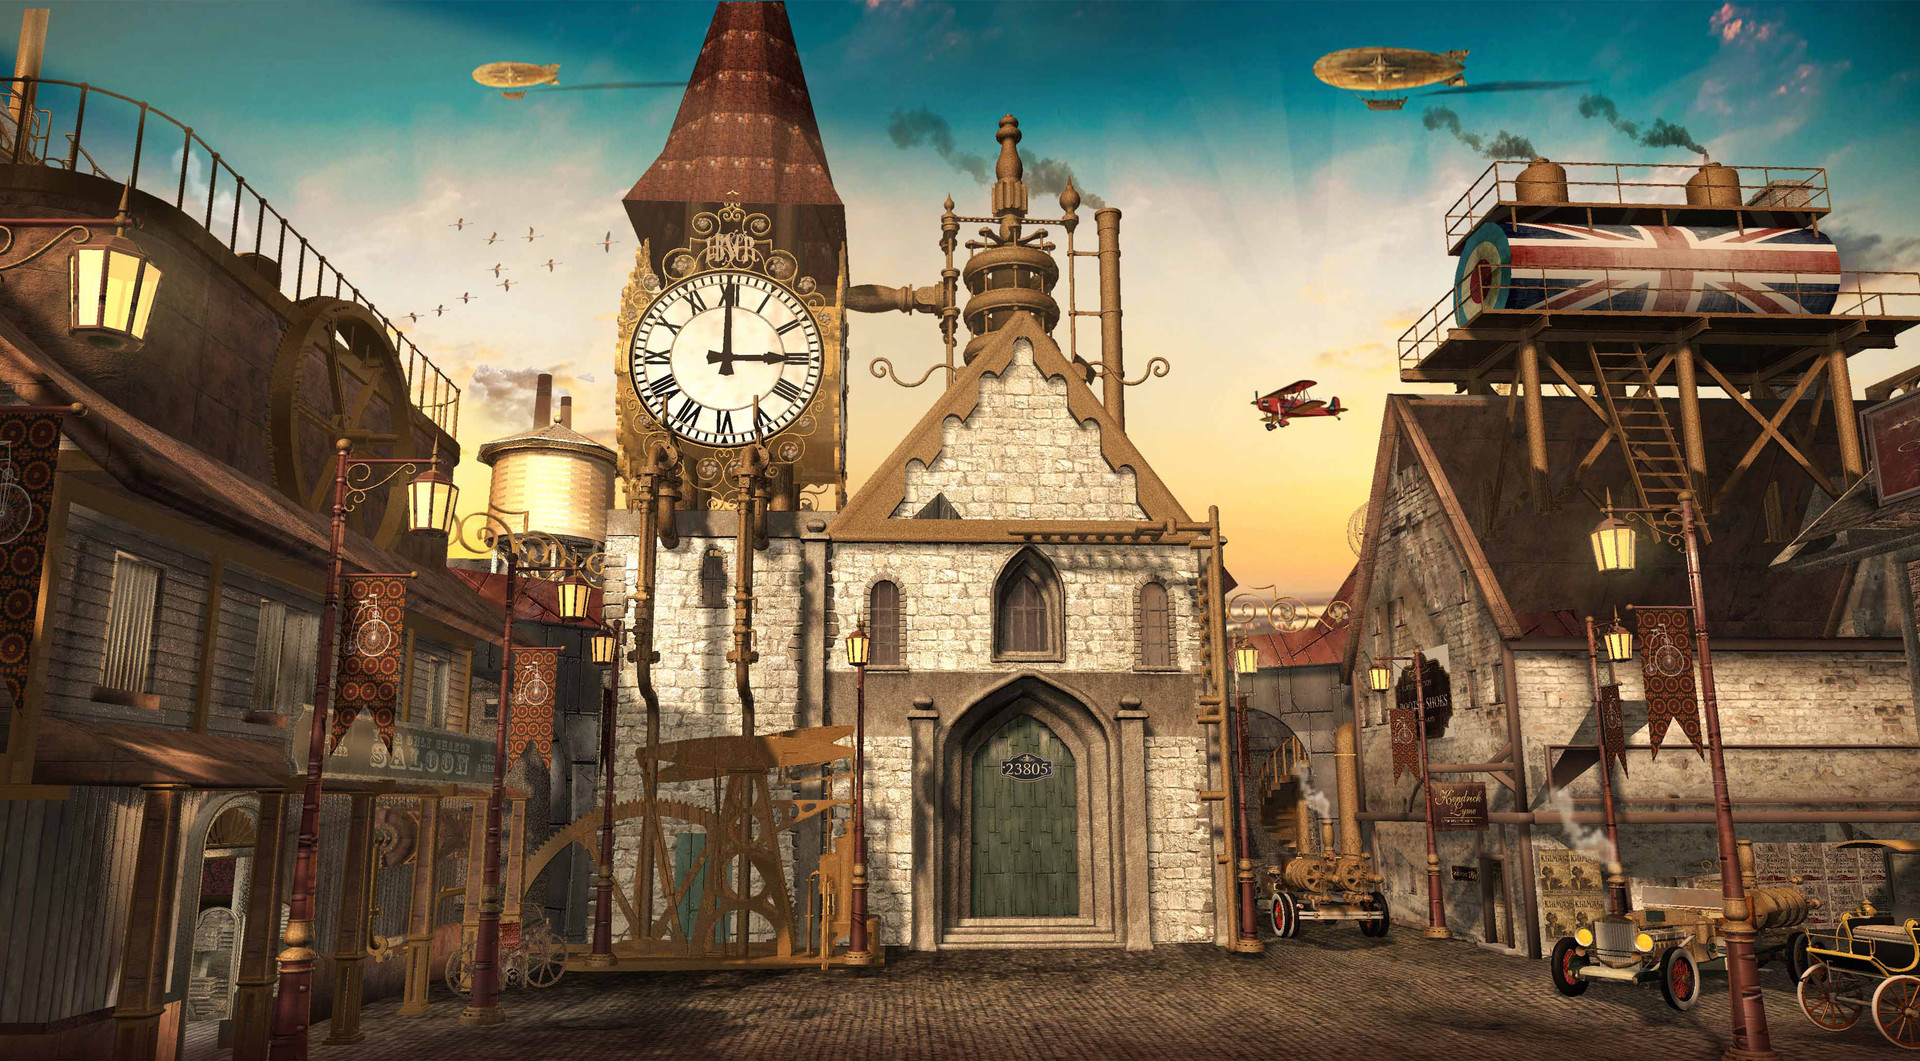 2D / 3D Land of the Lost Stories Marketplace - Once Upon  a Time Season 5 Additional Geo by Doug Mclean